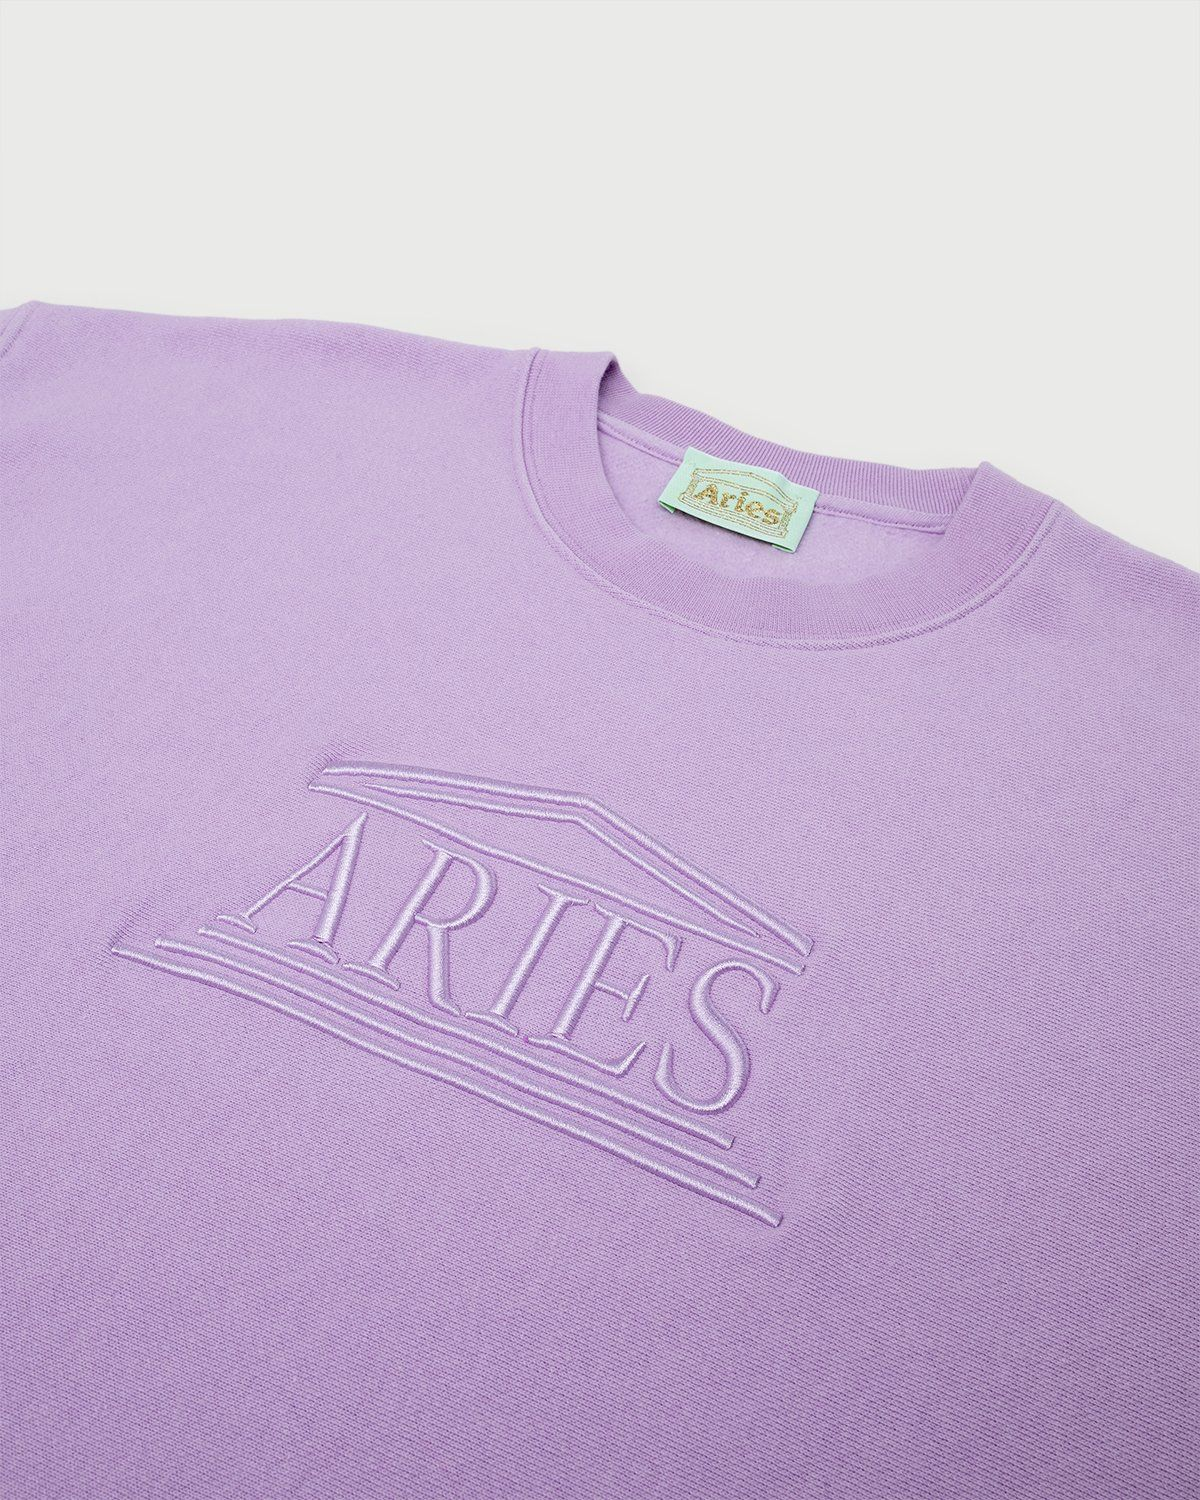 Aries - Embroidered Temple Sweatshirt Unisex Orchid - Image 2